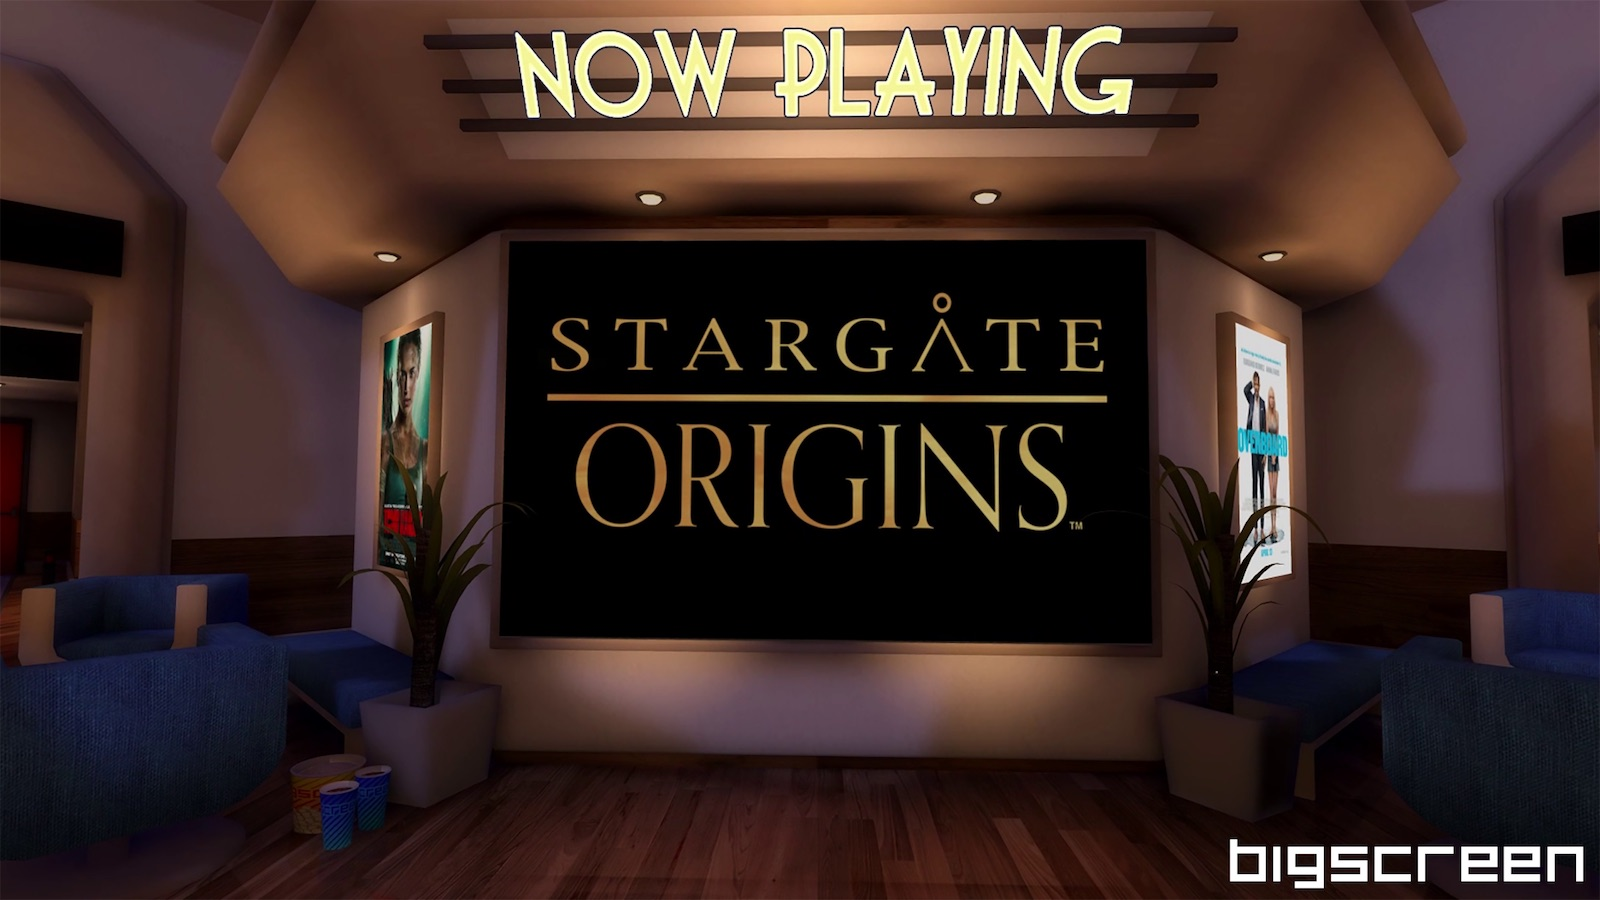 MGM Partners With Bigscreen To Bring The First Two Episodes Of Stargate Origin To VR